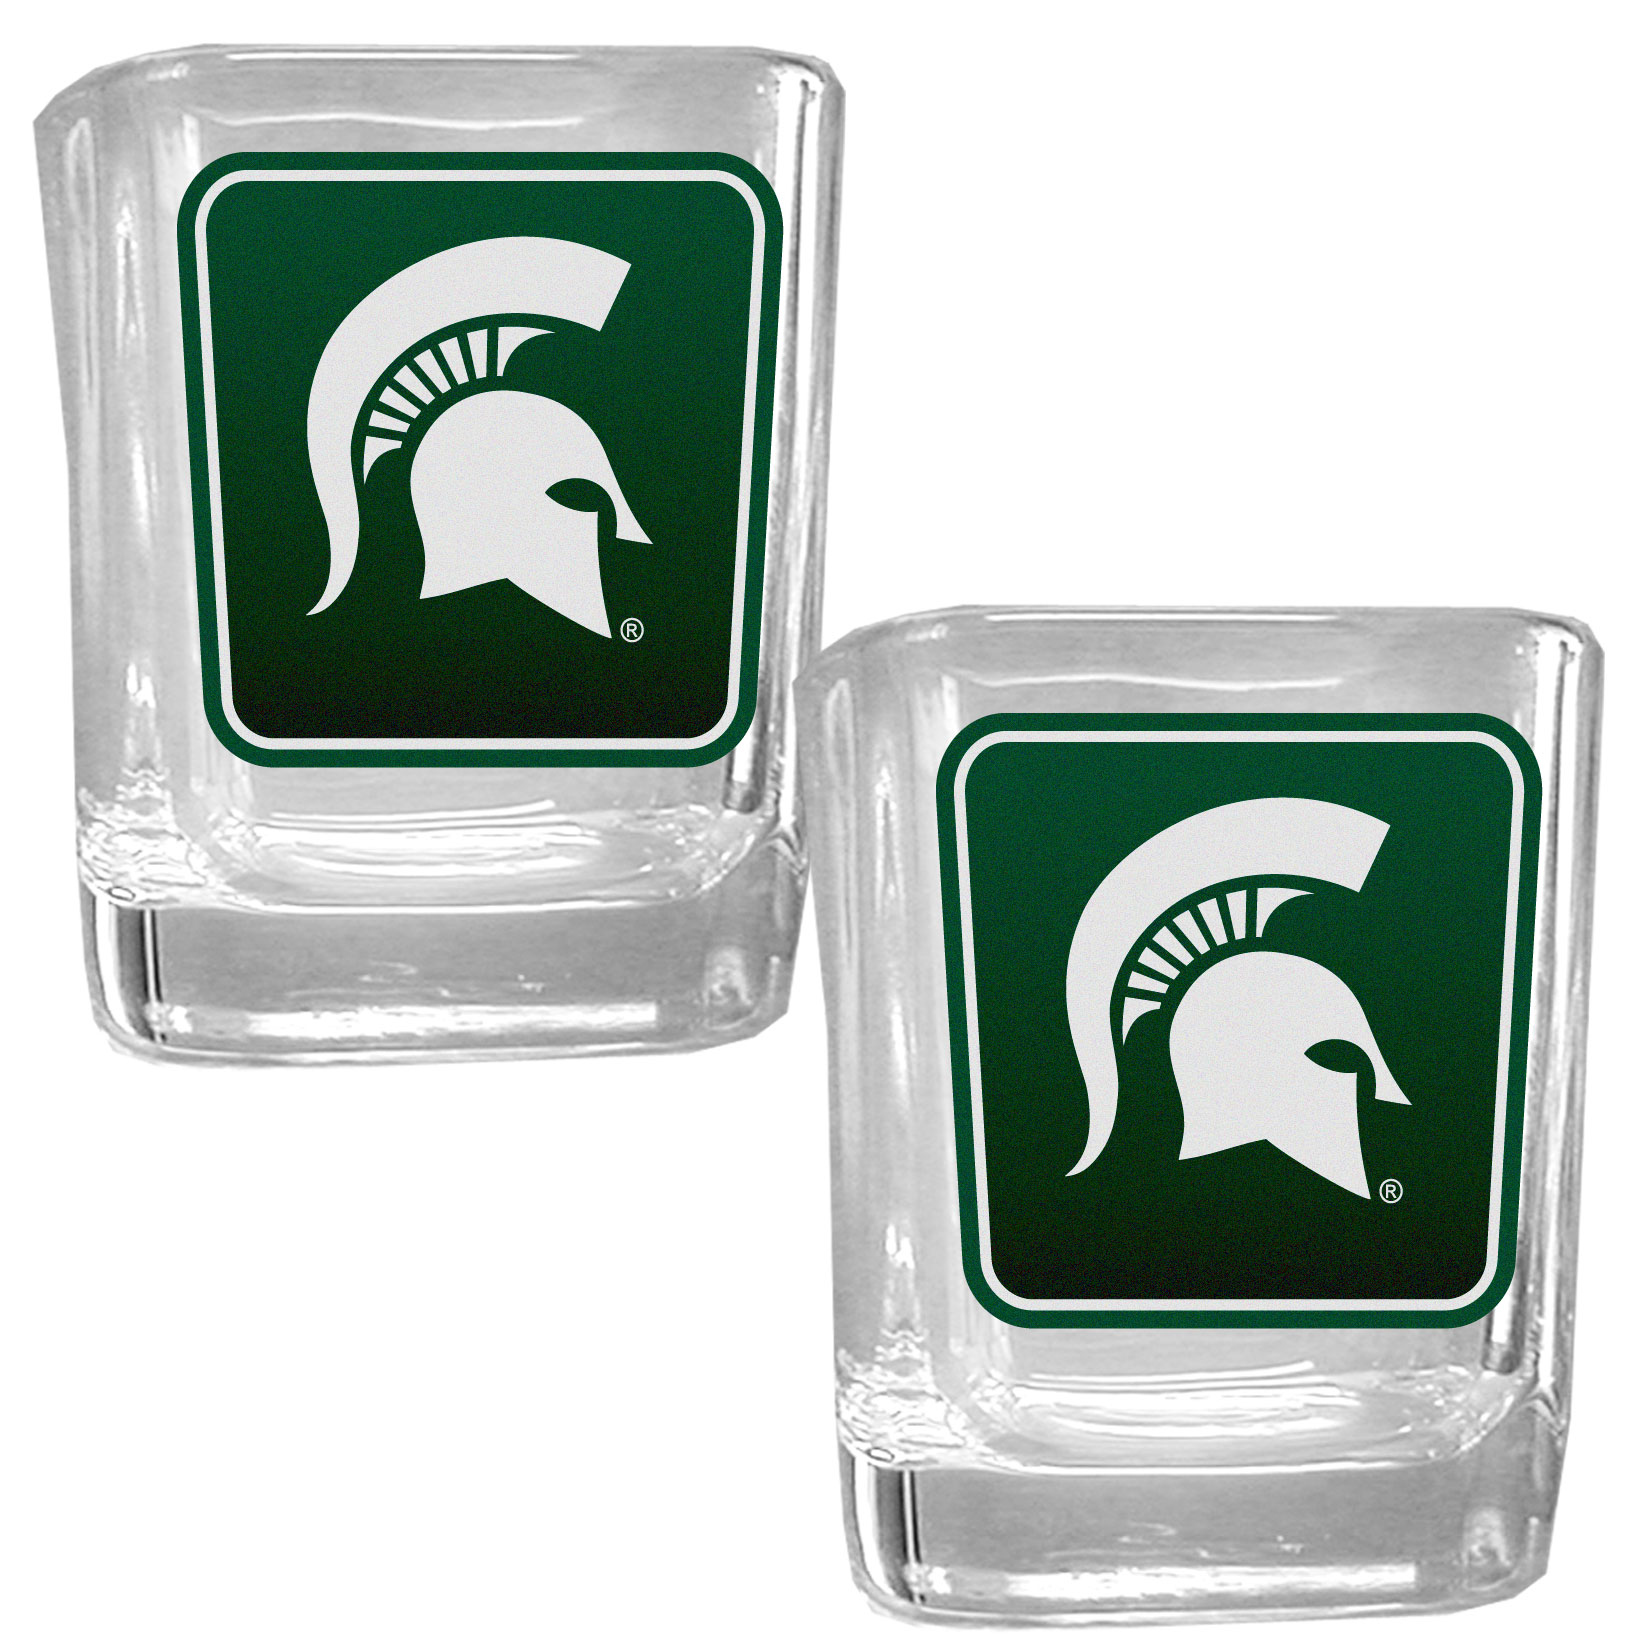 Michigan St. Spartans Square Glass Shot Glass Set - Our glass shot glasses are perfect for collectors or any game day event. The 2 ounce glasses feature bright, vidid digital Michigan St. Spartans graphics. Comes in a set of 2.